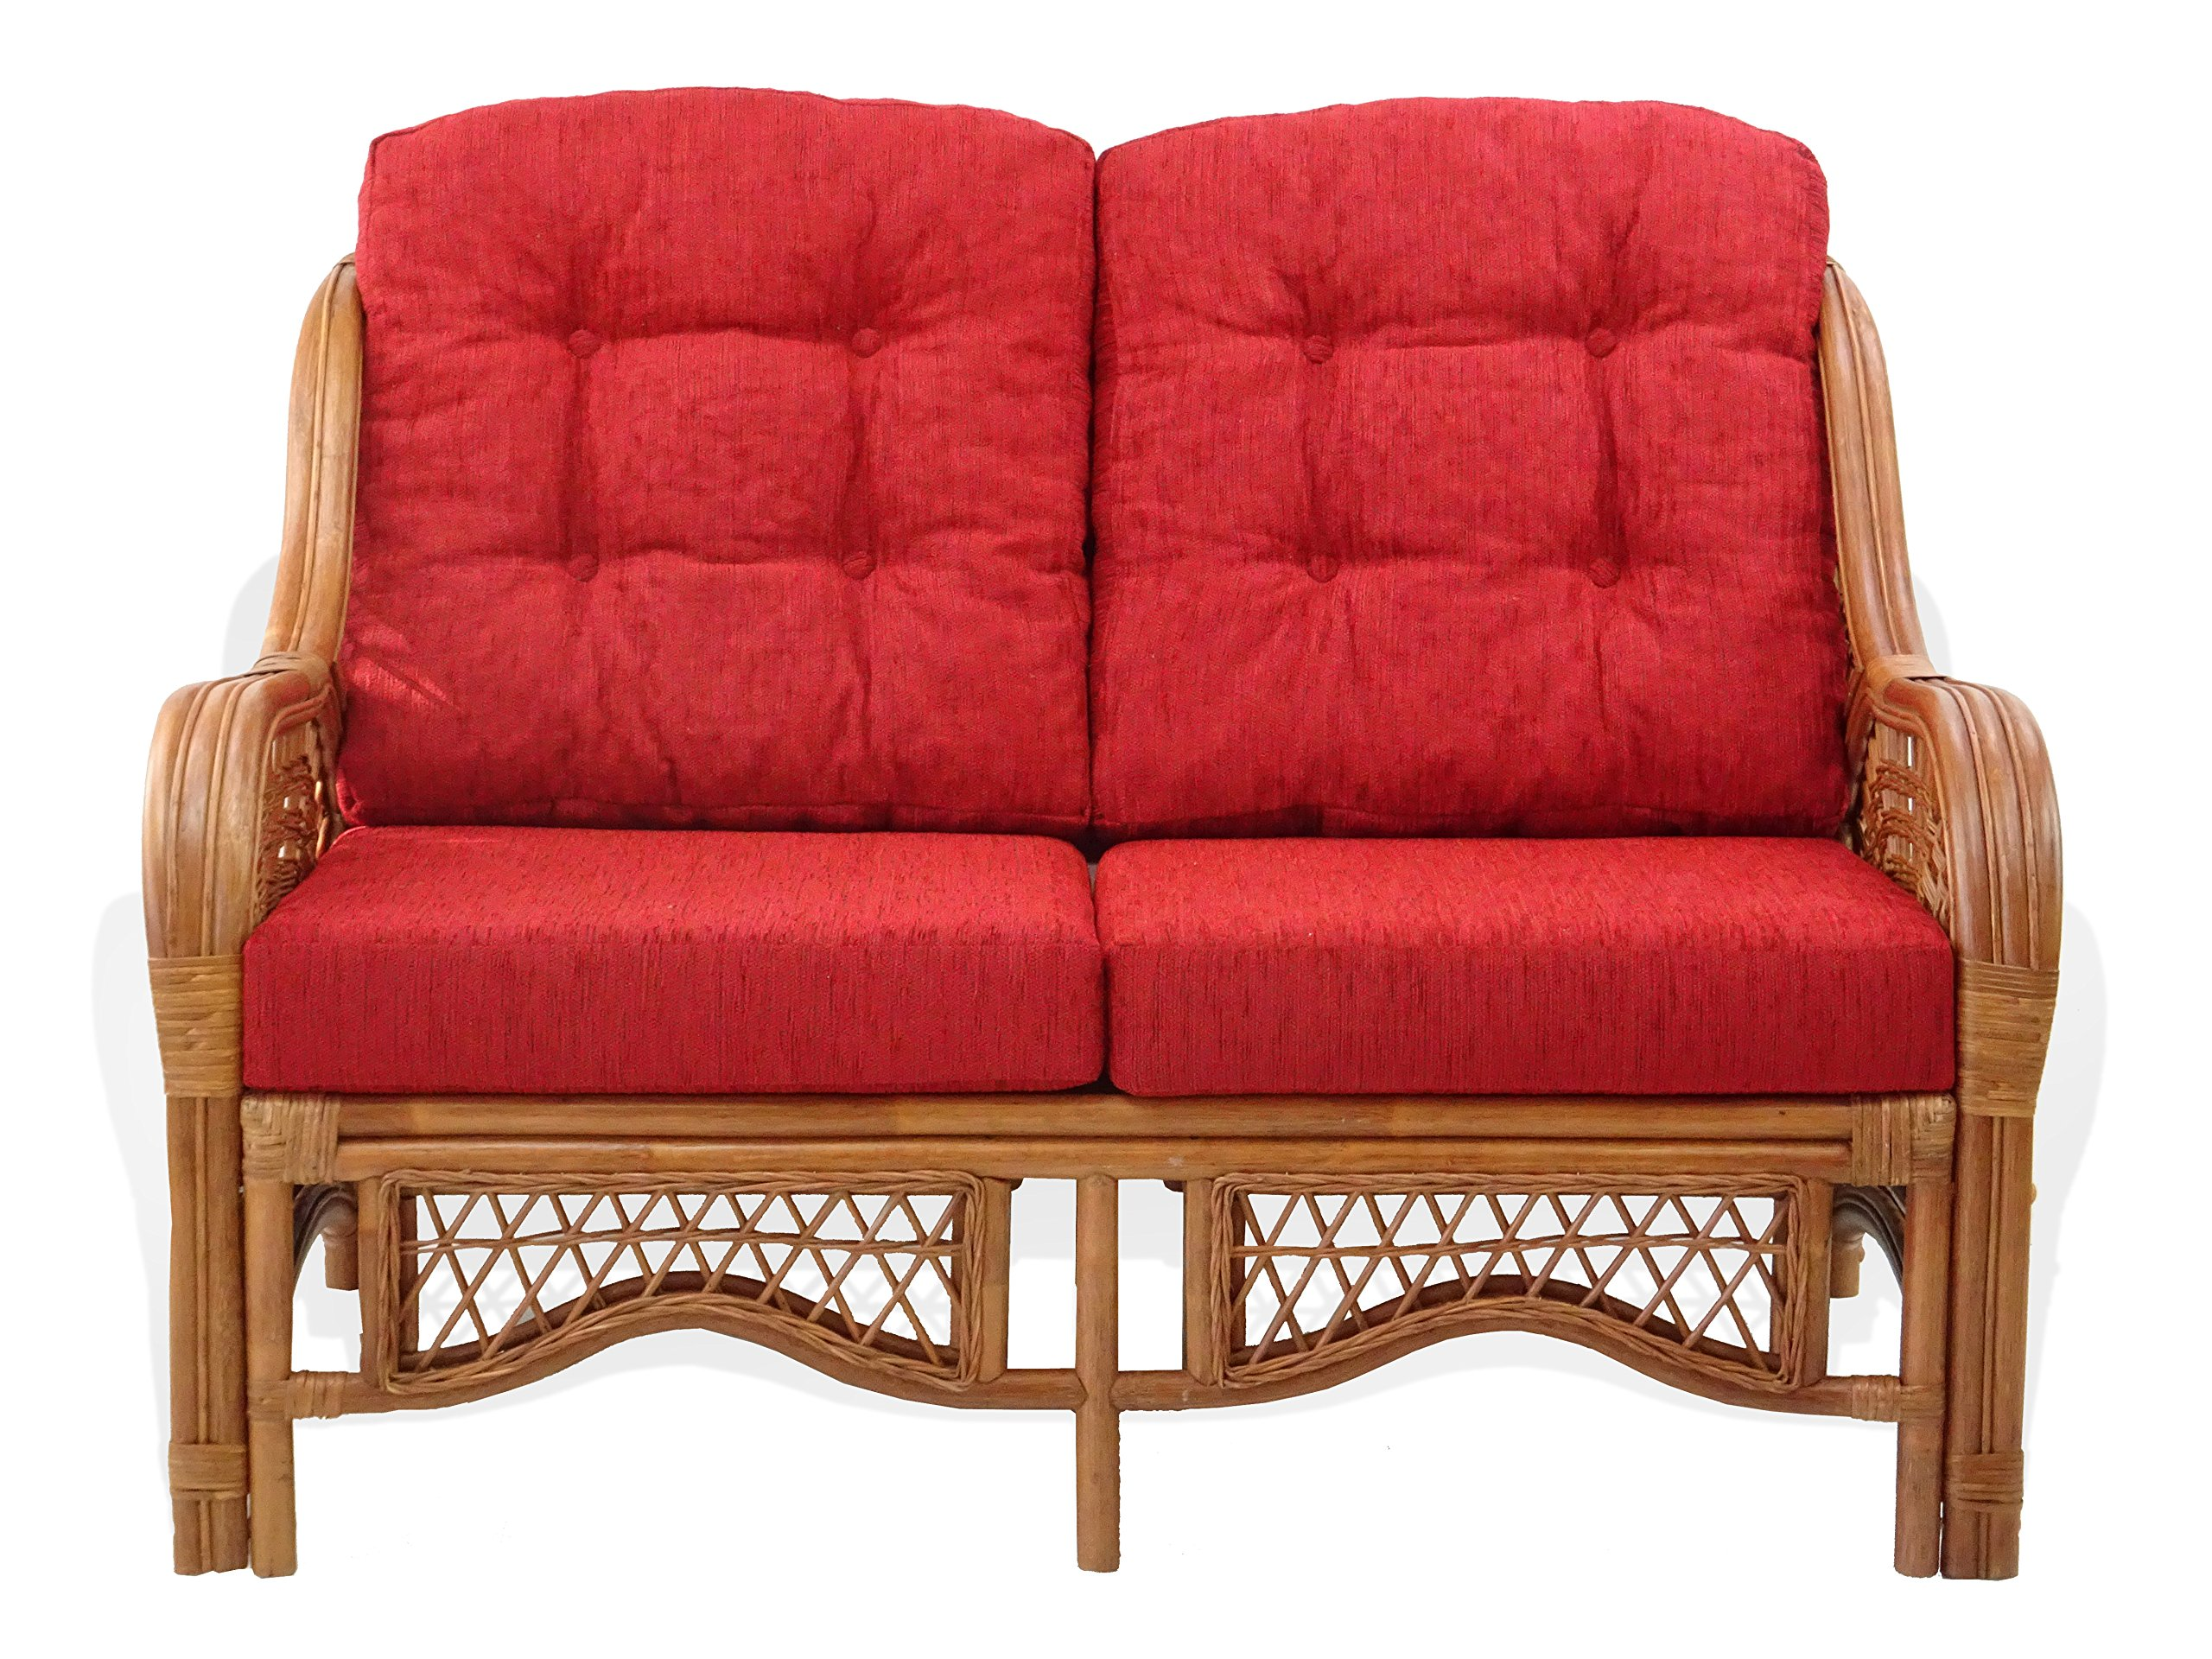 Malibu Lounge Loveseat Sofa Natural Rattan Wicker Handmade Design with Red Cushions, Colonial - ~Natural Rattan (Wicker) ~Color: Colonial ~Very easy to assemble - sofas-couches, living-room-furniture, living-room - 918Ulb0HHxL -